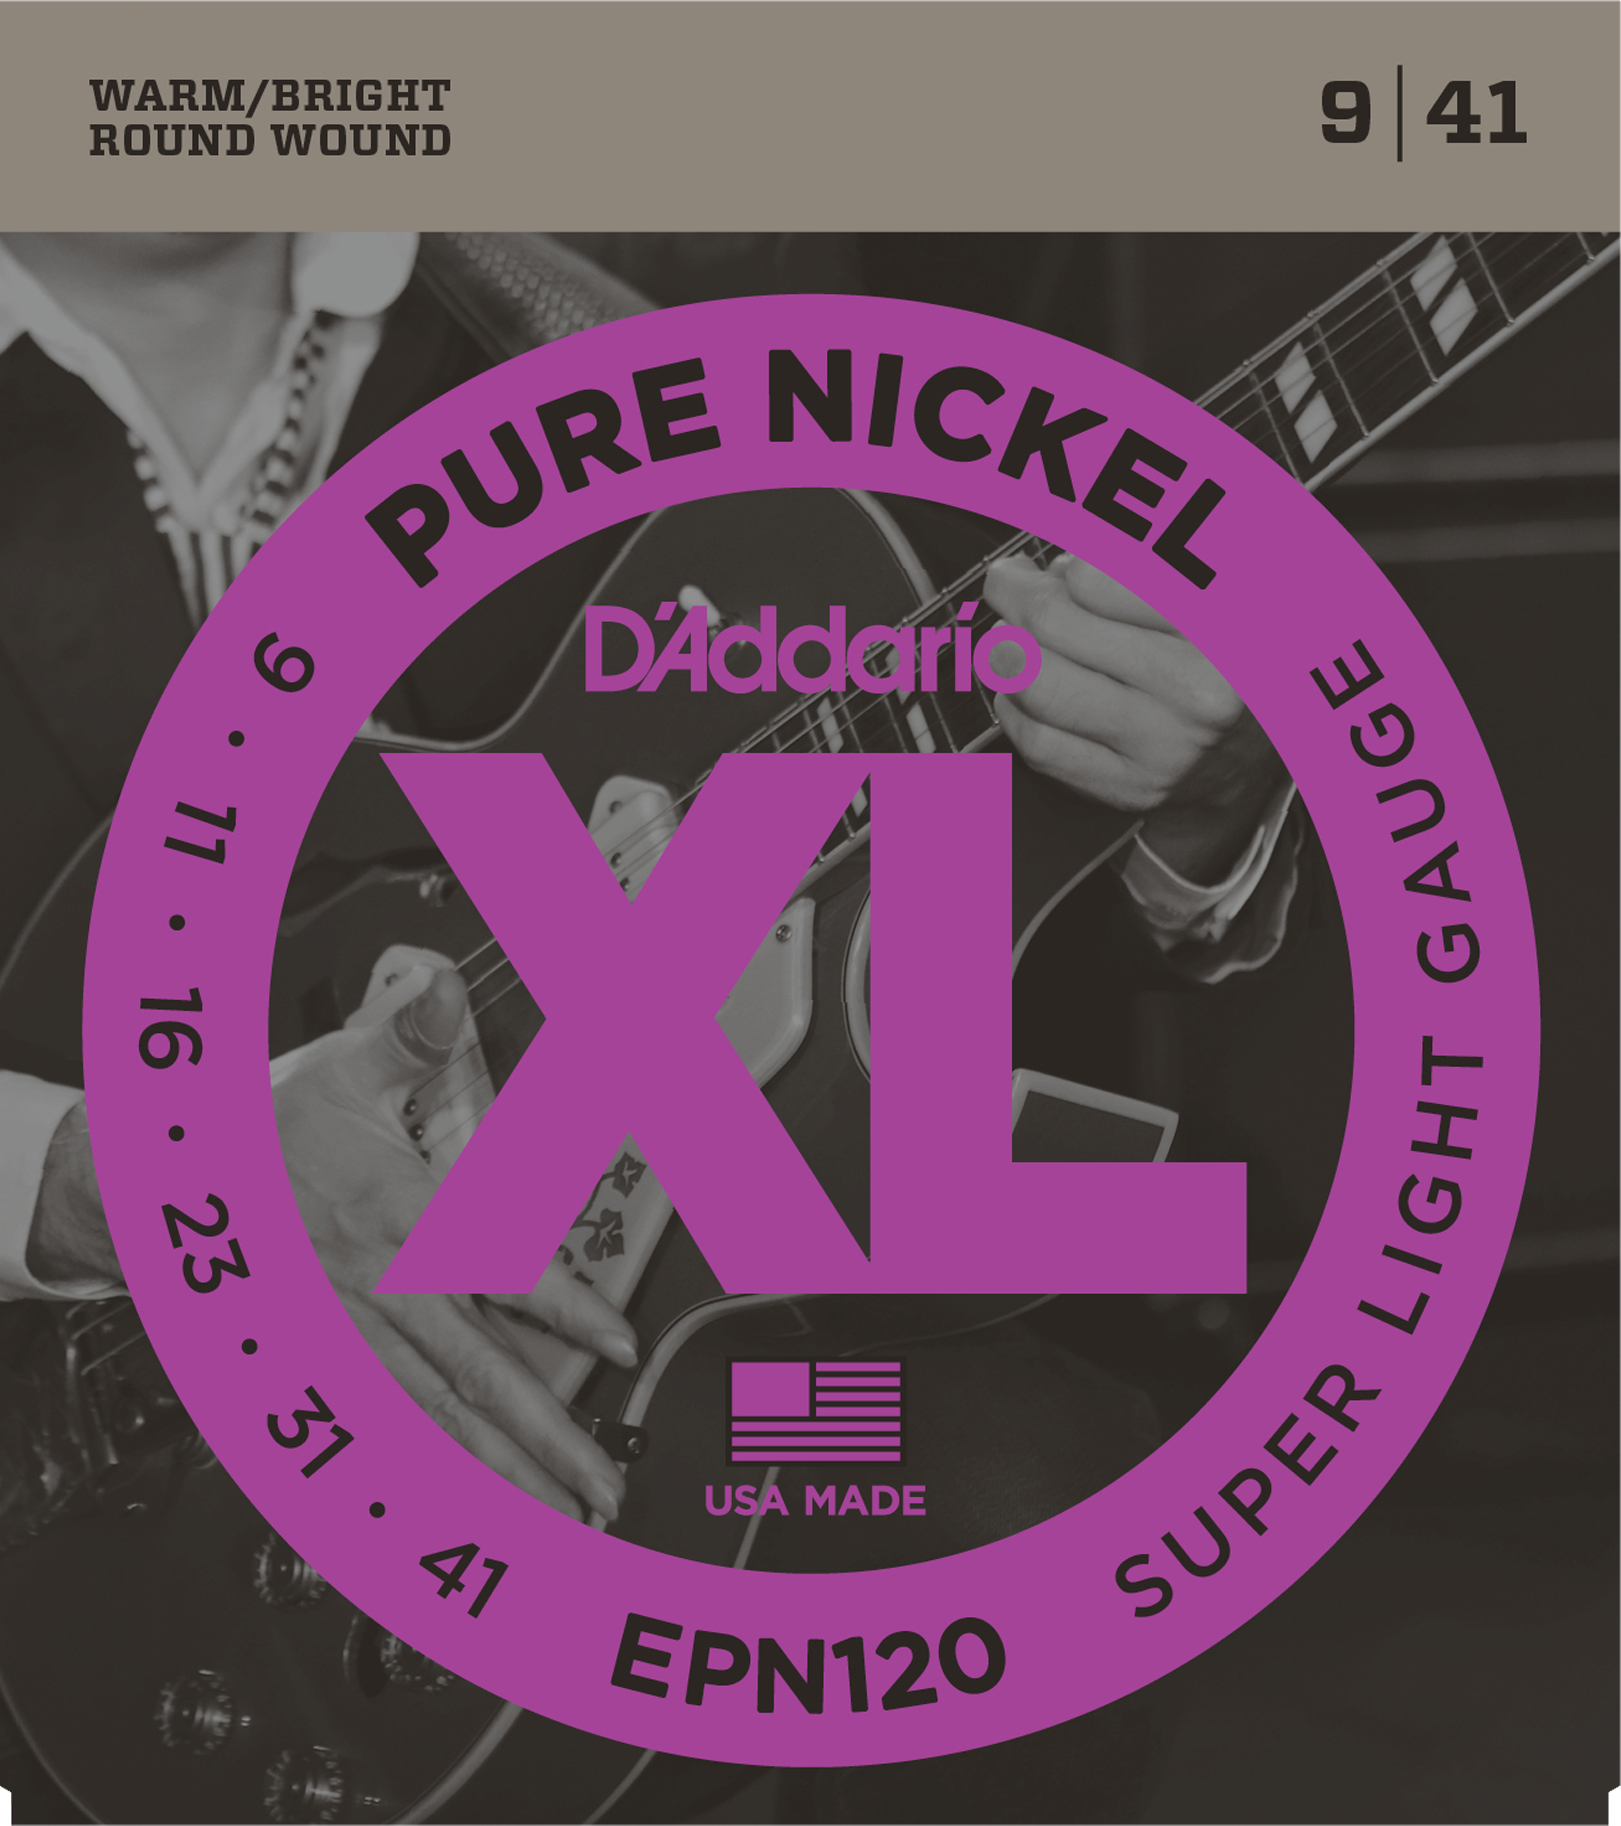 D'Addario pure nickel guitar strings 9-41 EPN120